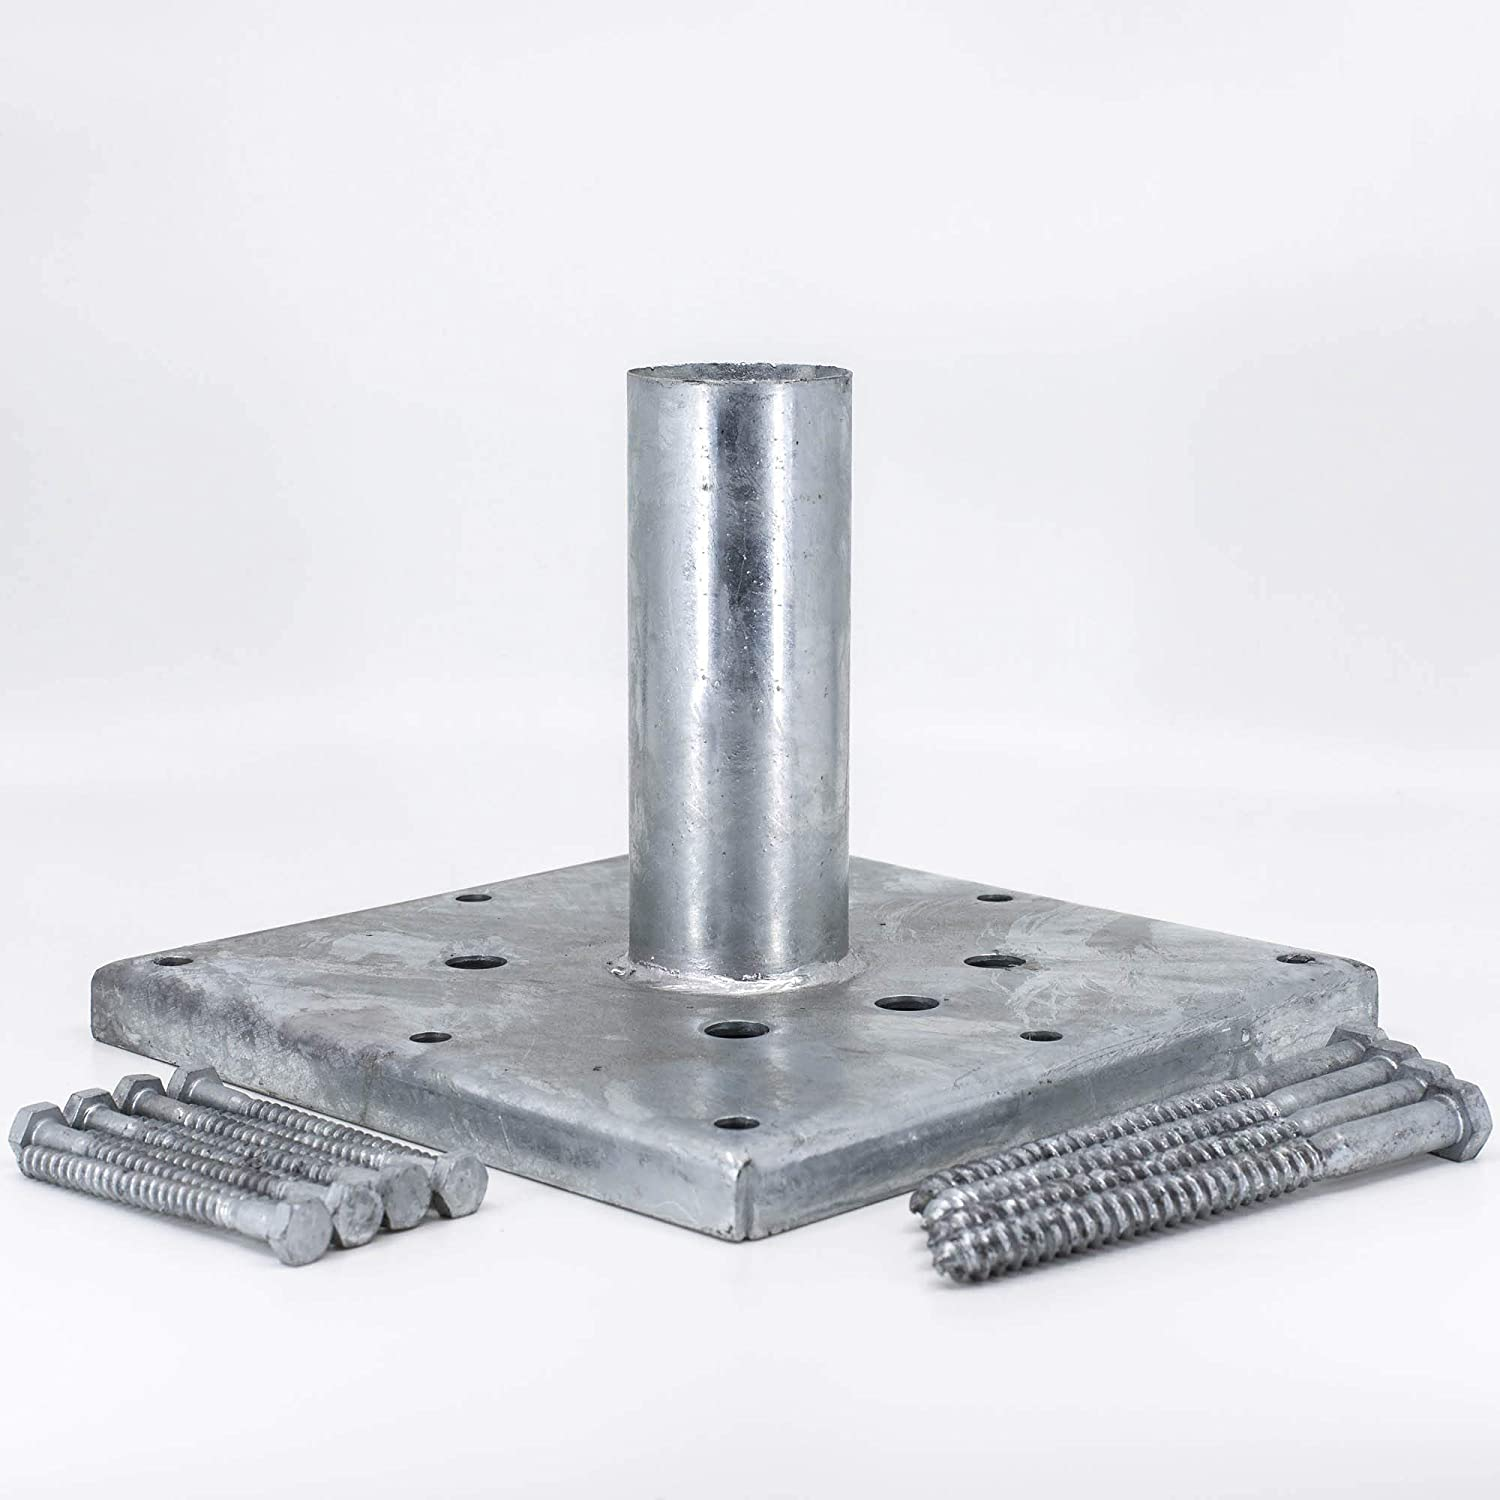 Titan Building Products - 6x6 Wood Post Anchor Kit- TIPRG661 - Galvanized -  5 5